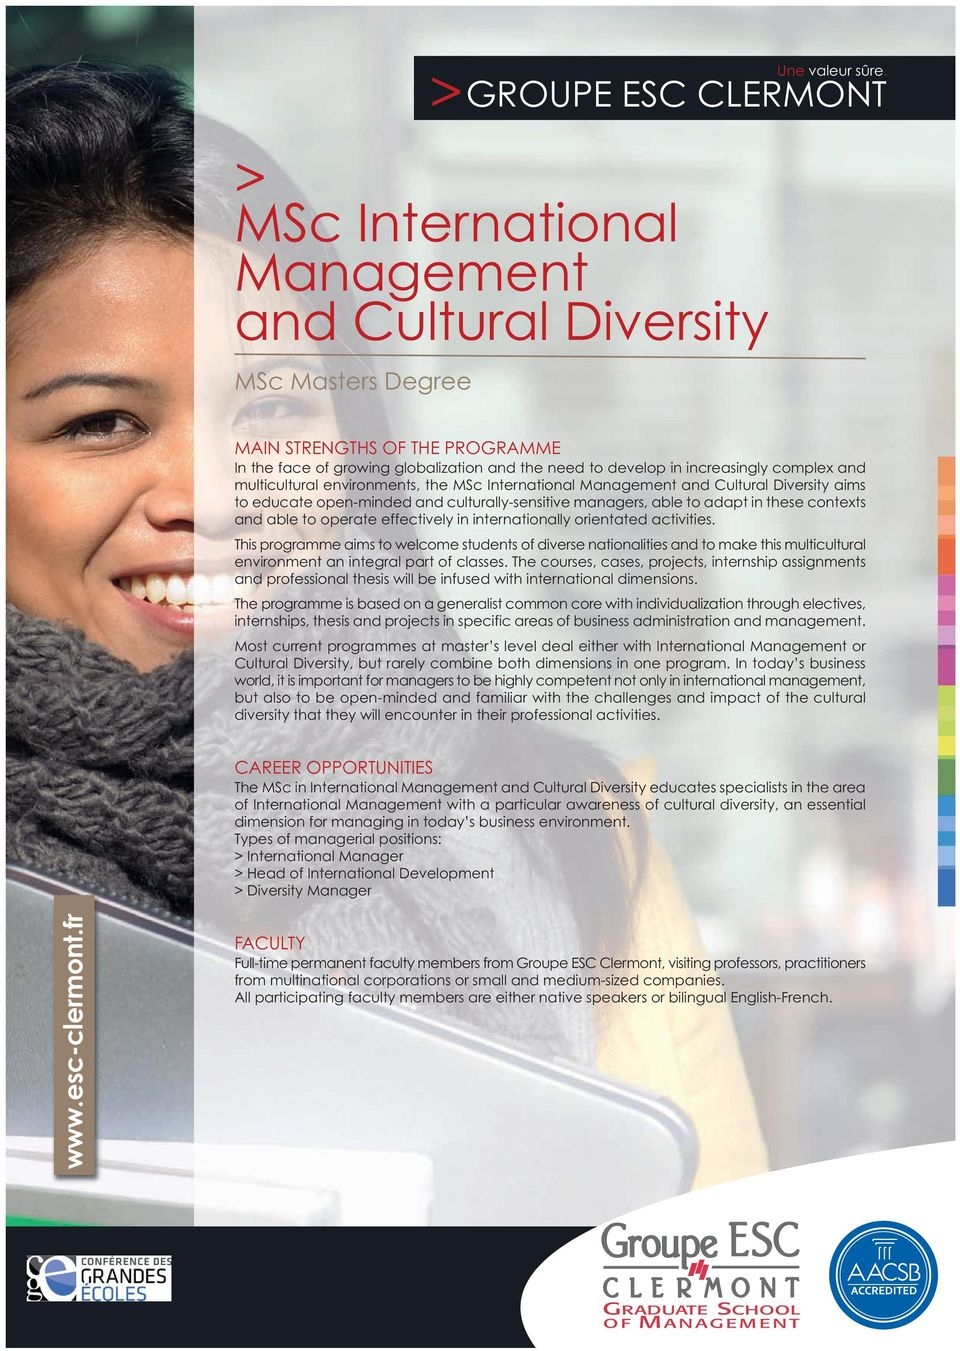 increasingly complex and multicultural environments, the MSc International Management and Cultural Diversity aims to educate open-minded and culturally-sensitive managers, able to adapt in these